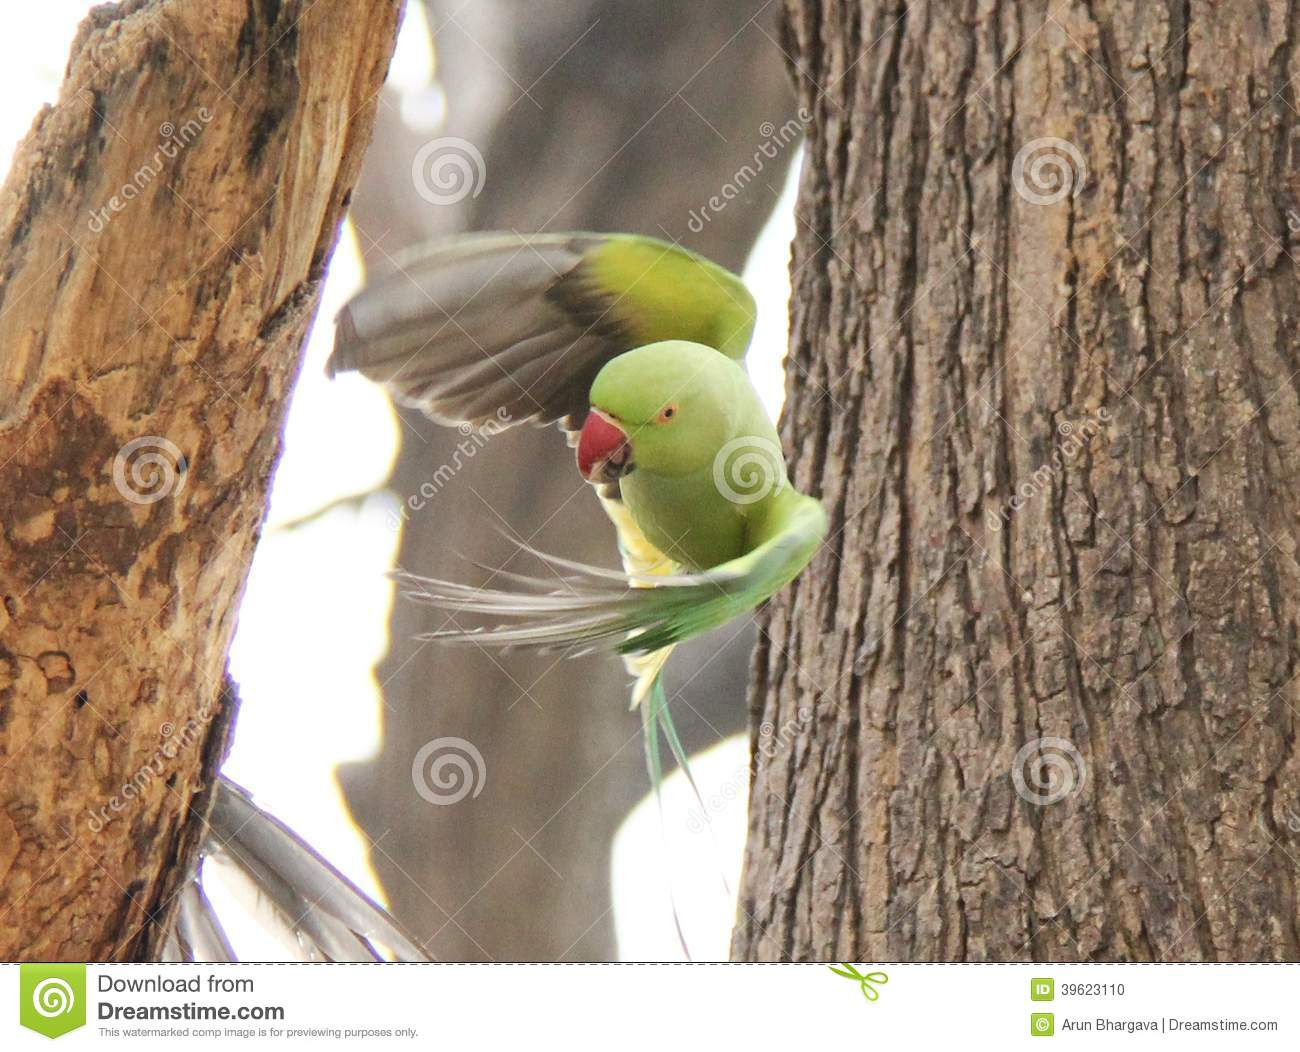 Astrology Question - Sagittarius Flying-green-parrot-indian-red-neck-ring-takes-off-tree-branch-39623110